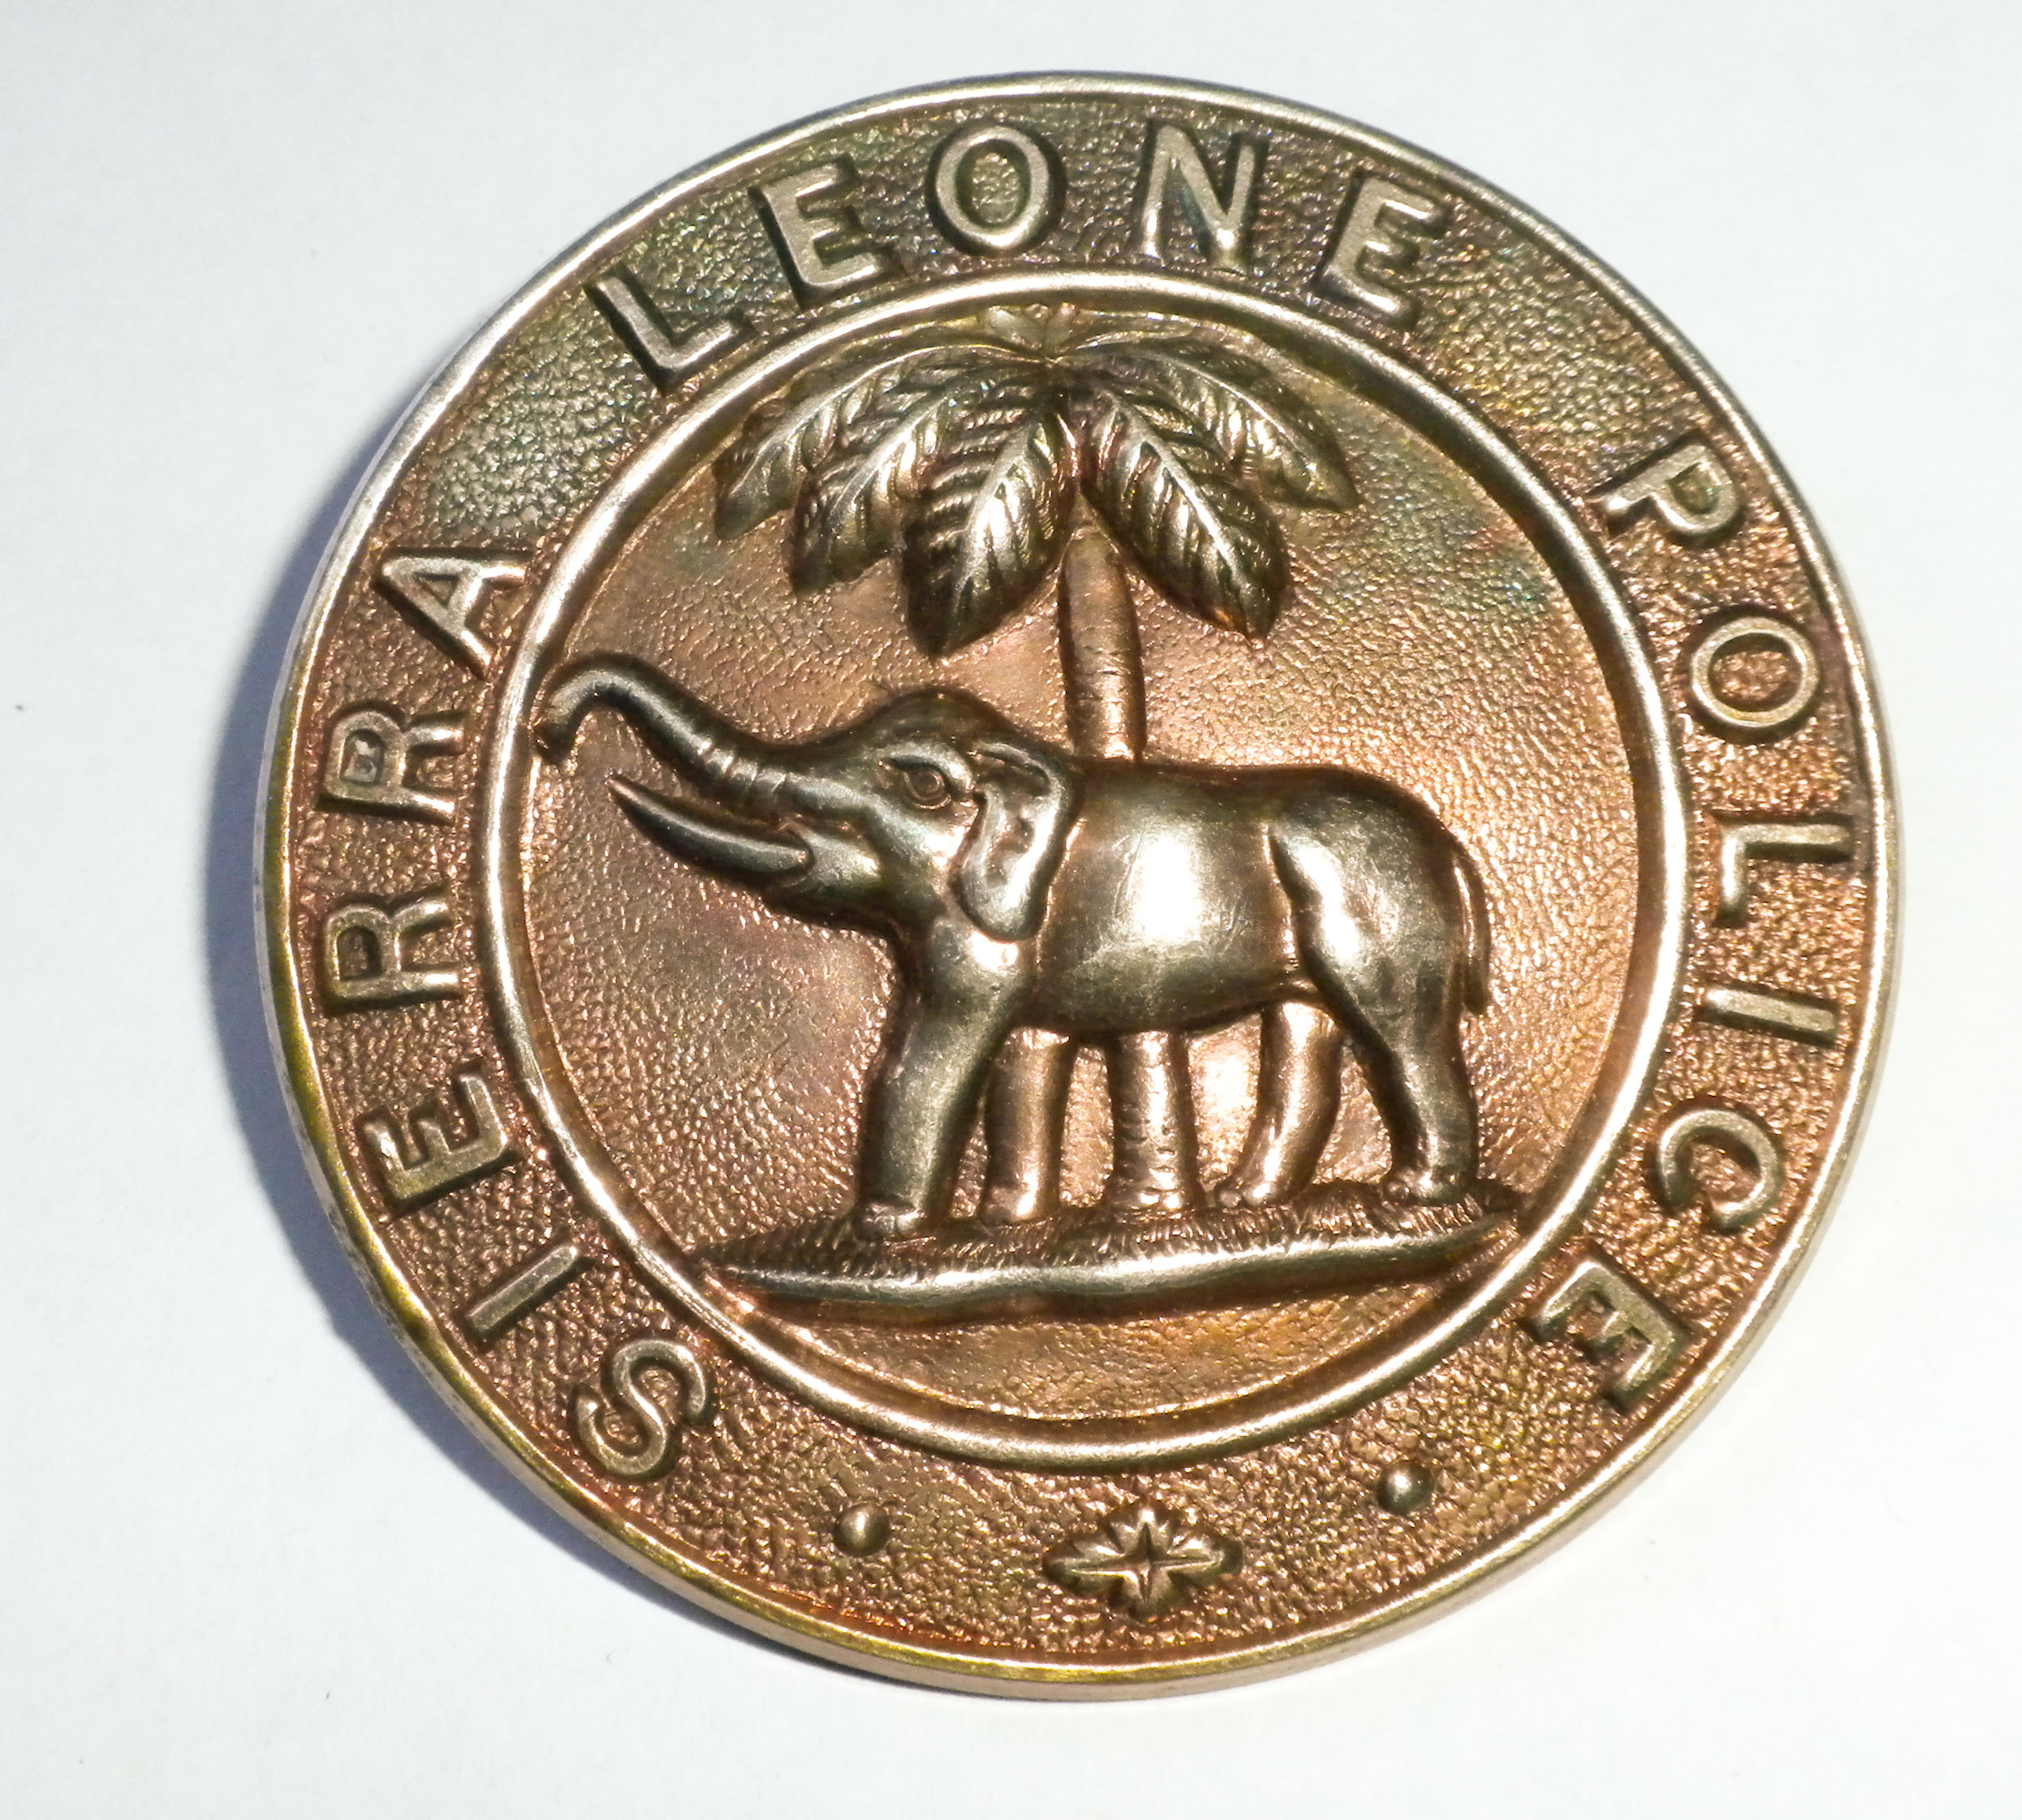 Sierra Leone Web Medals And Insignia From The Gary Schulze Collection